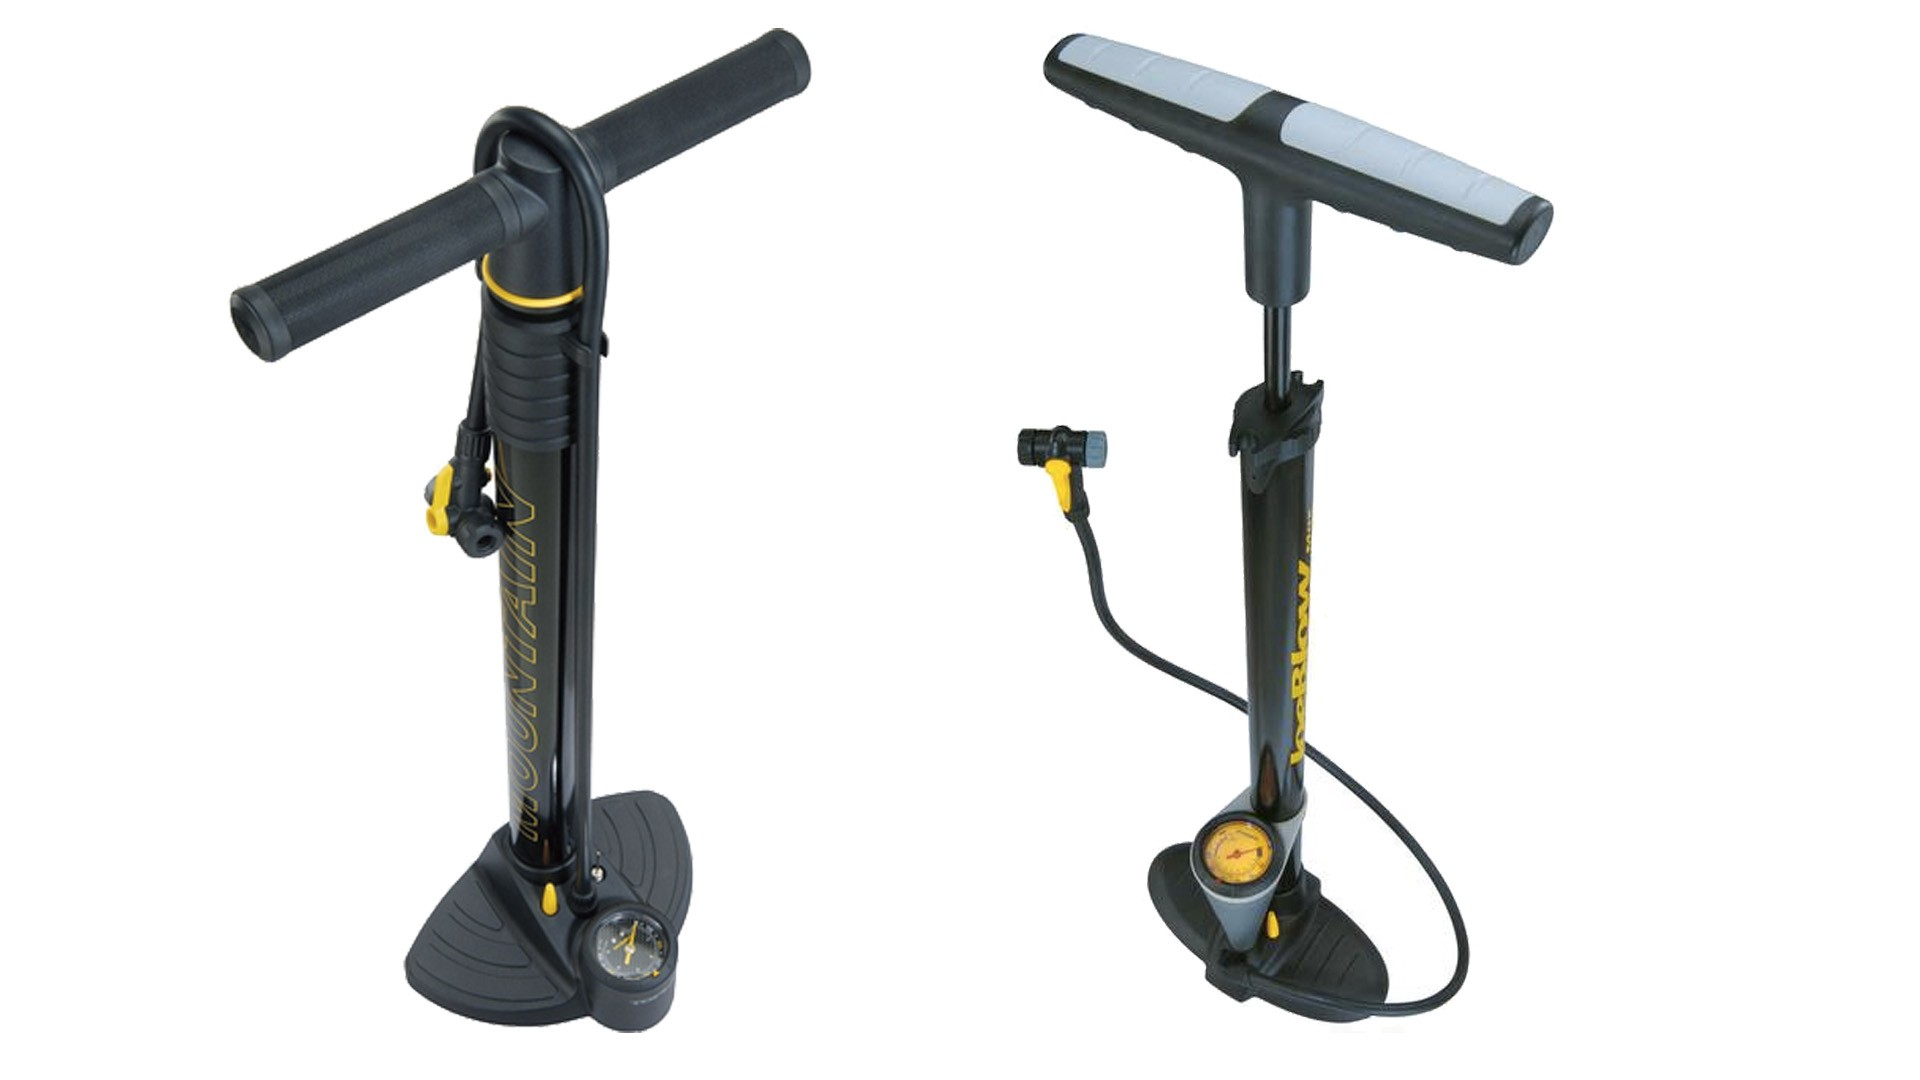 Trust us, a track pump is WAY easier to use than a hand pump